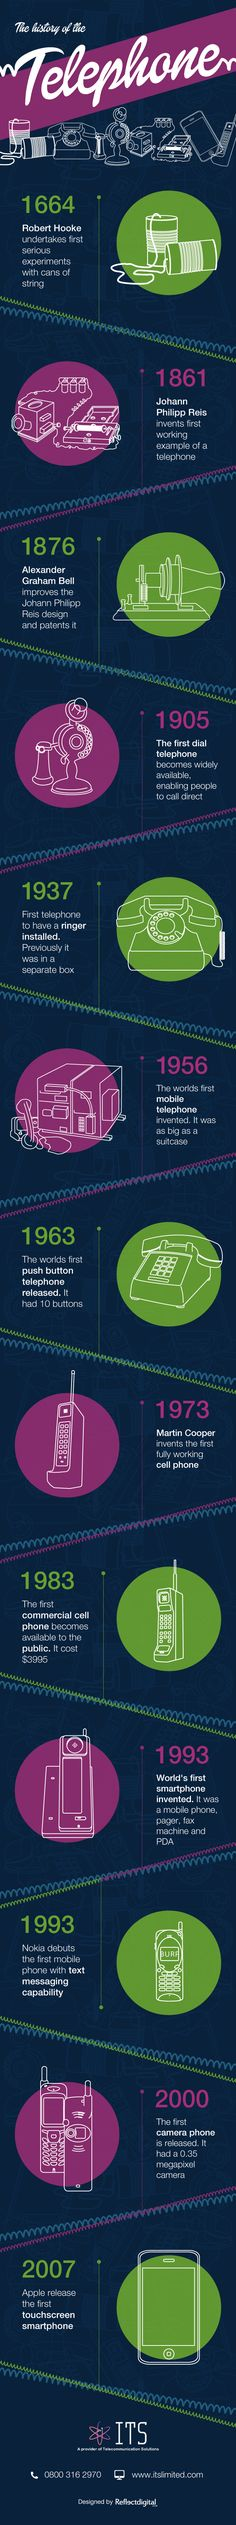 Infographic: History of the Telephone